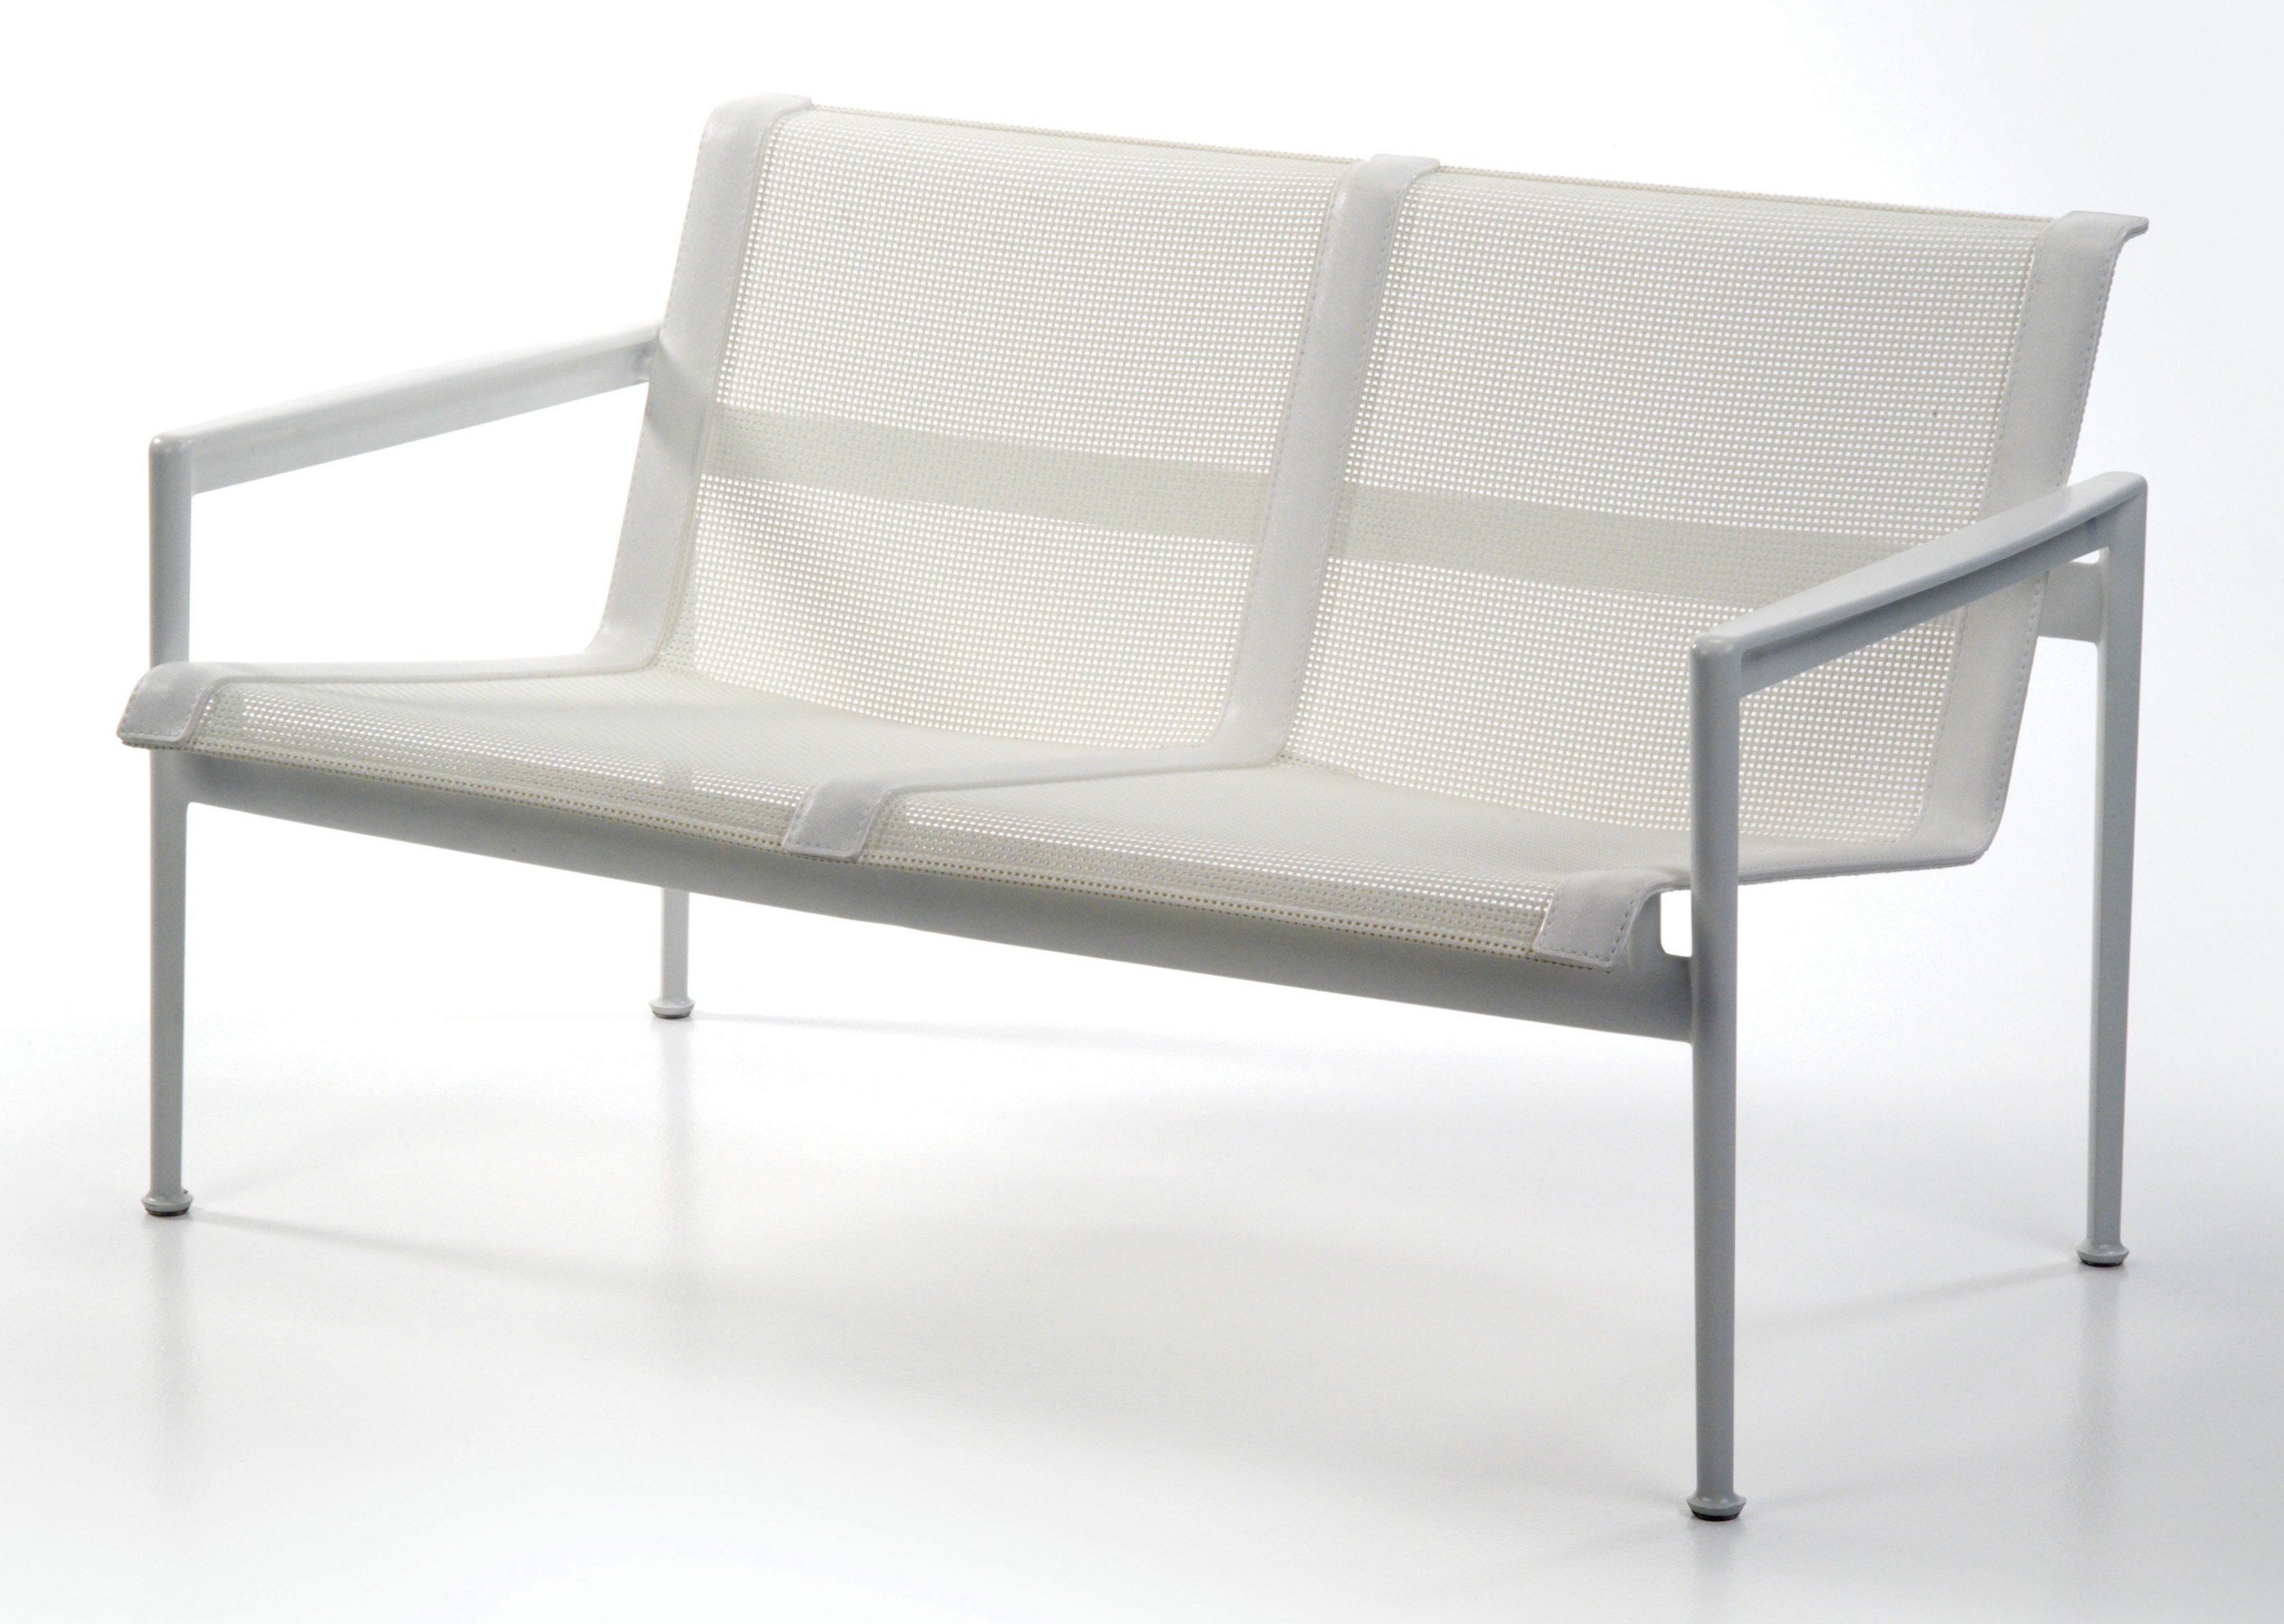 Richard Schultz 1966 Collection® Twin Seat Lounge Chair  sc 1 st  Modern Planet & Richard Schultz 1966 Collection® Twin Seat Lounge Chair - Modern Planet